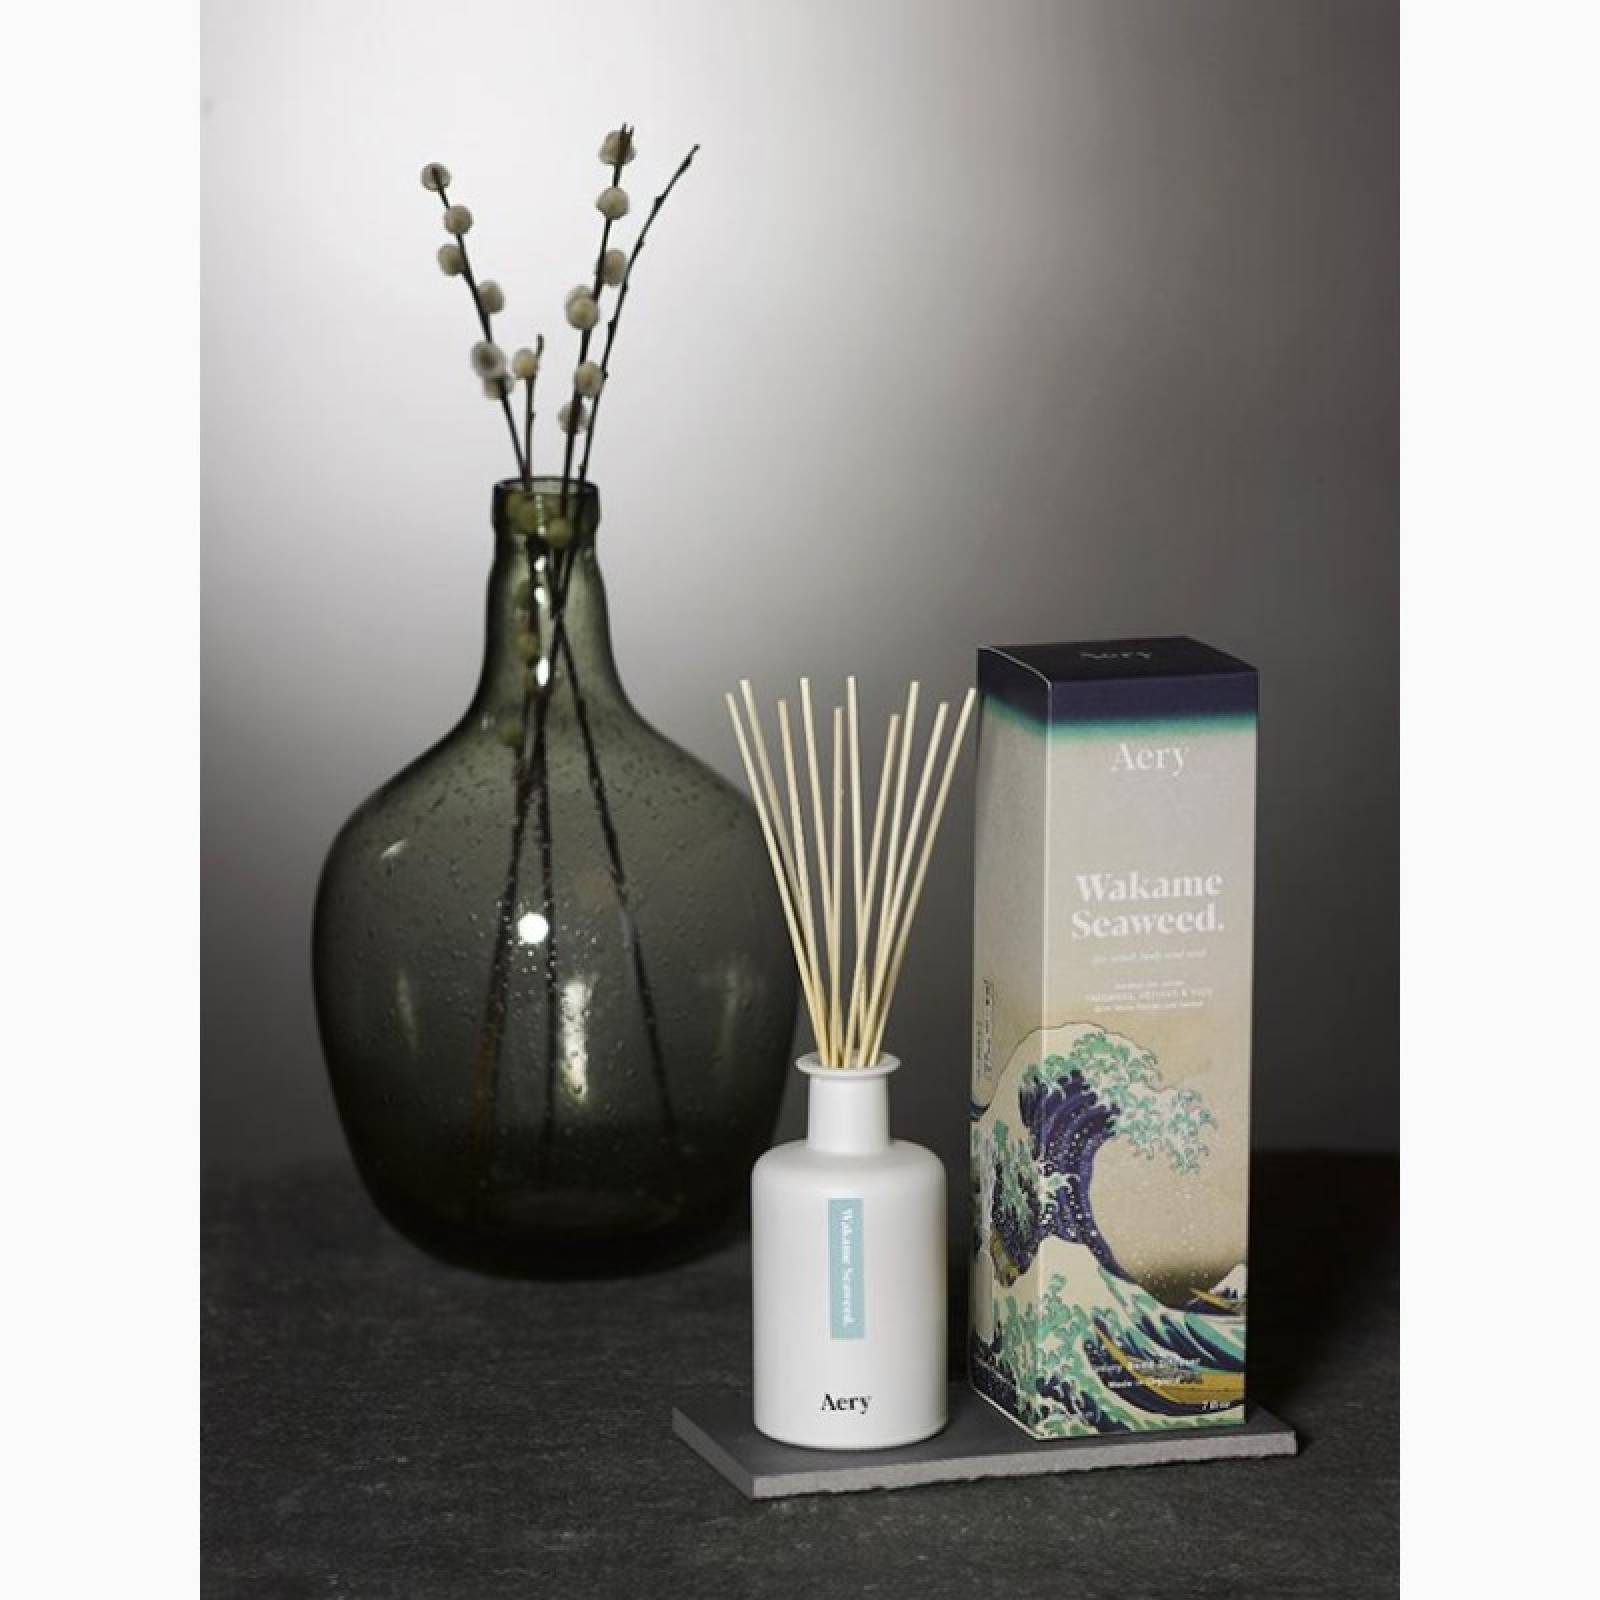 Wakame Seaweed Reed Diffuser By Aery thumbnails